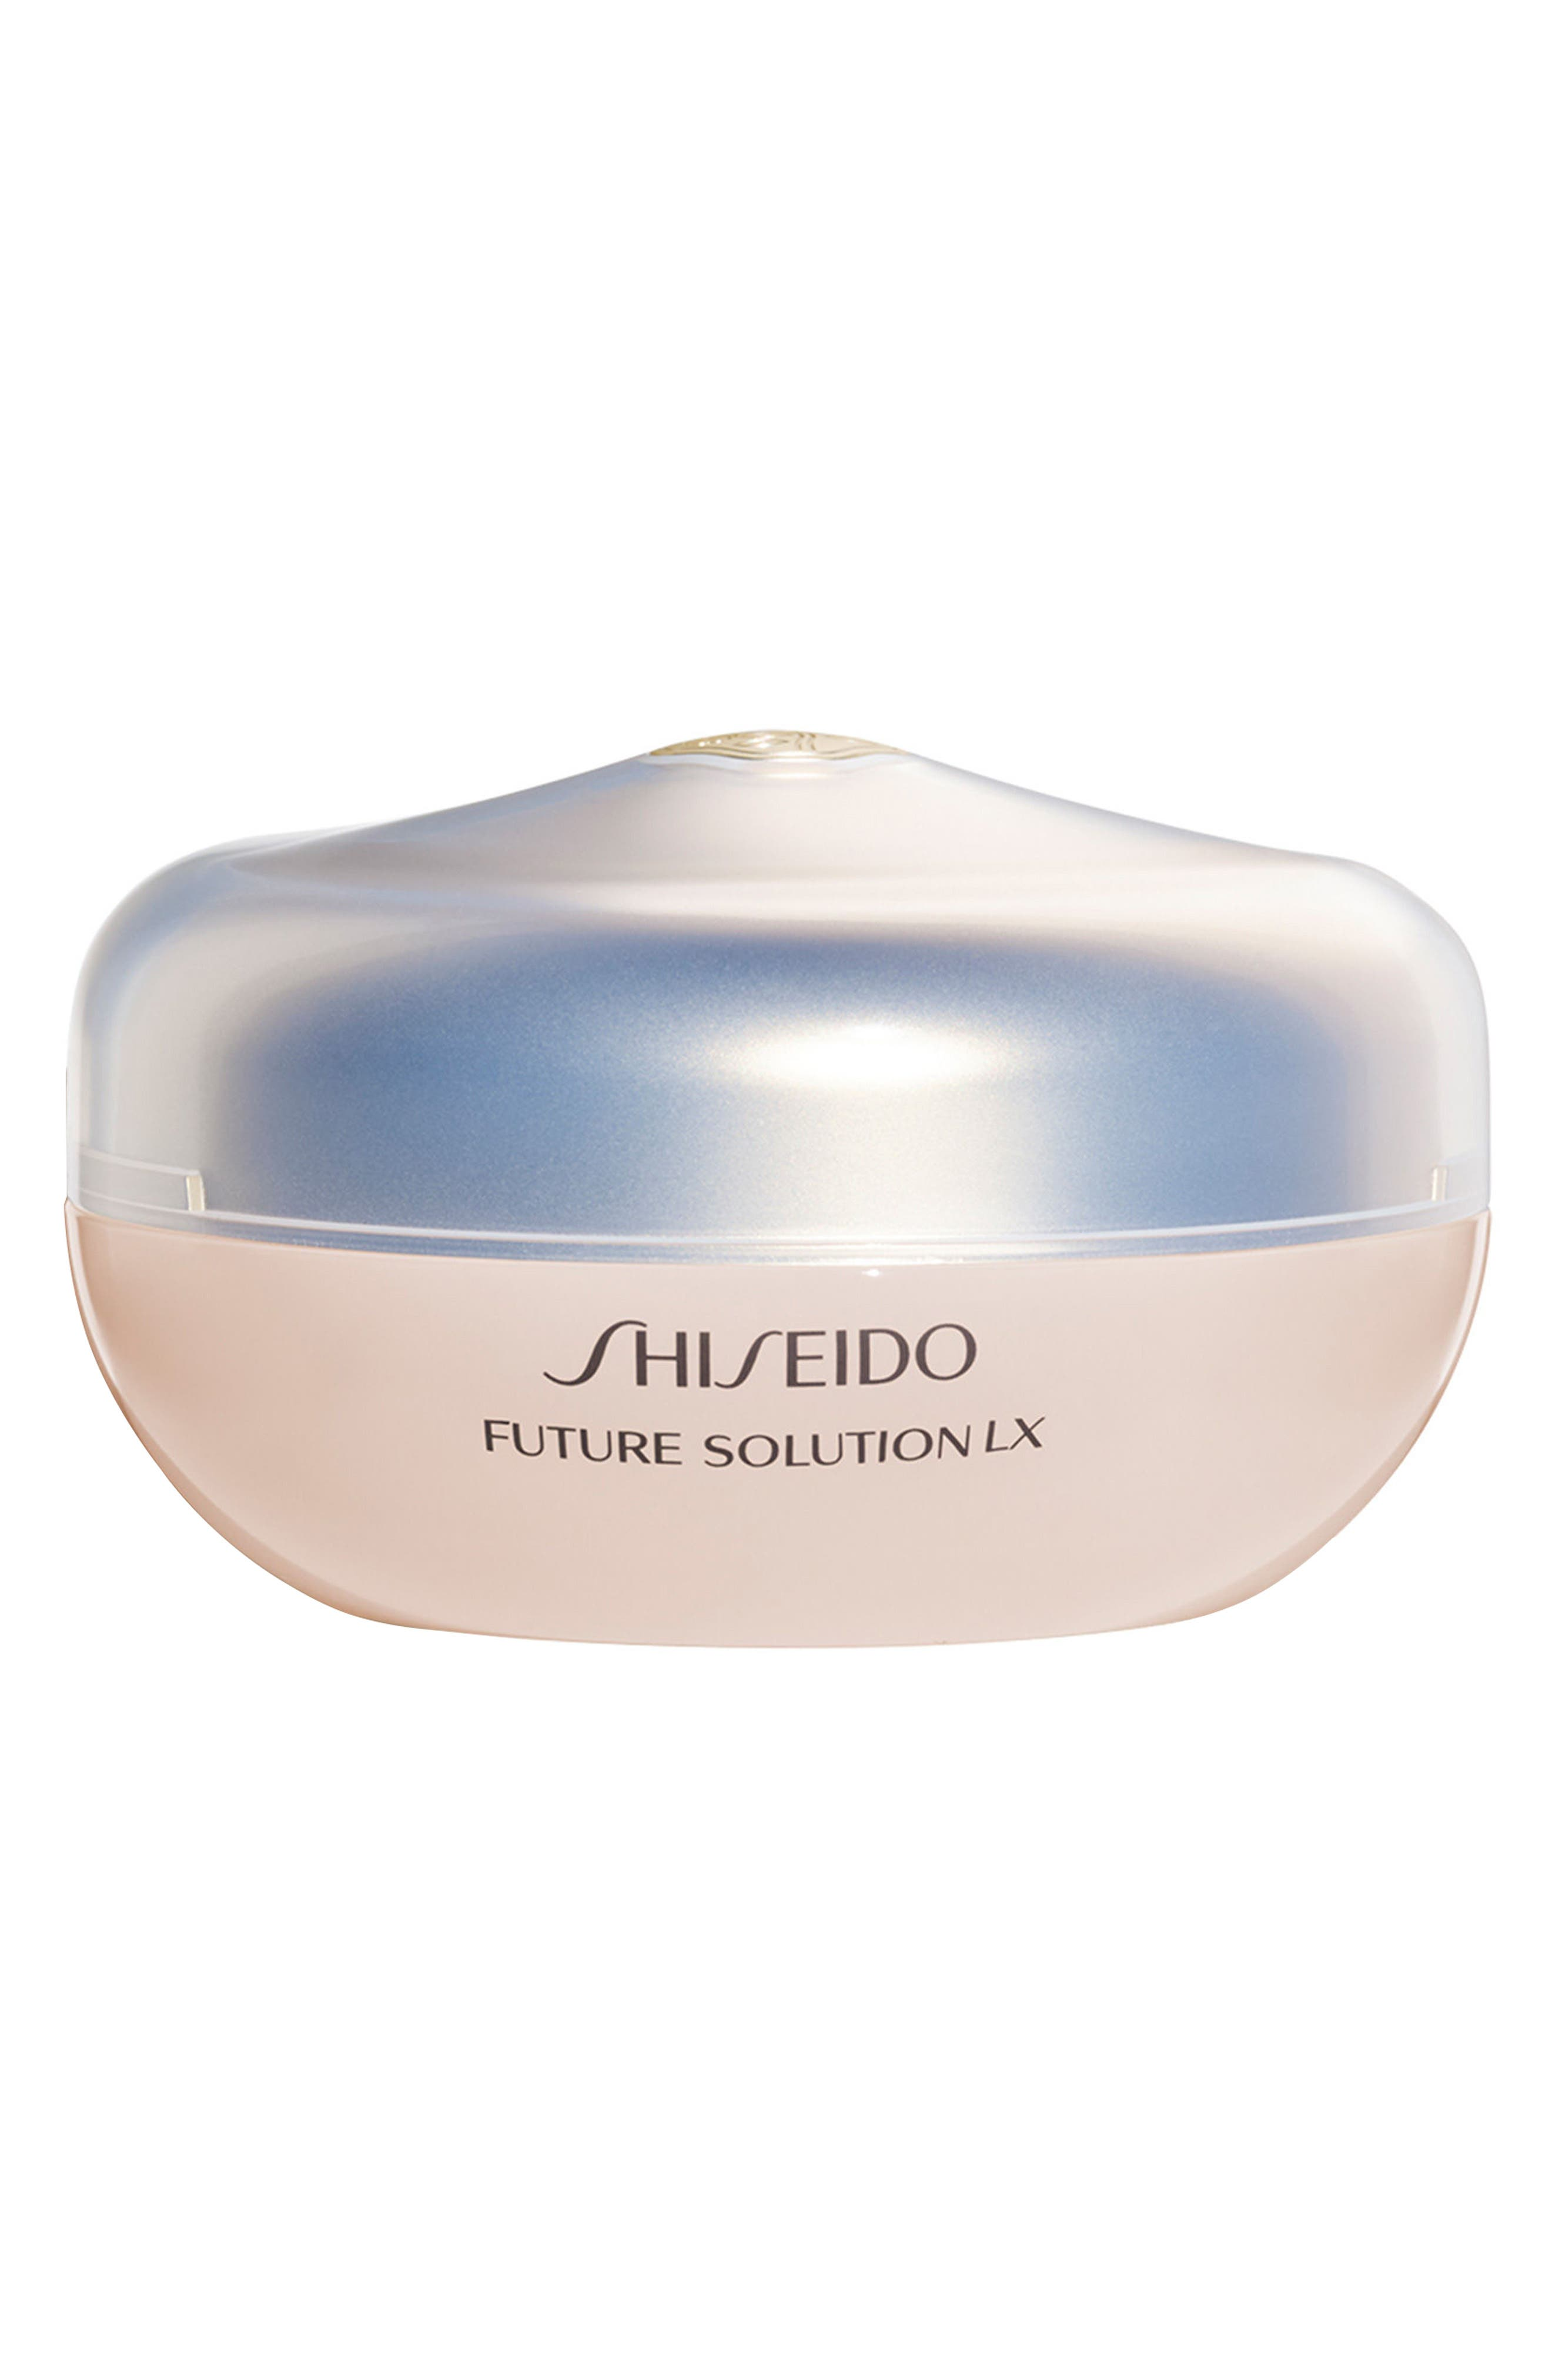 Alternate Image 1 Selected - Shiseido Future Solution LX Total Radiance Loose Powder (Nordstrom Exclusive)